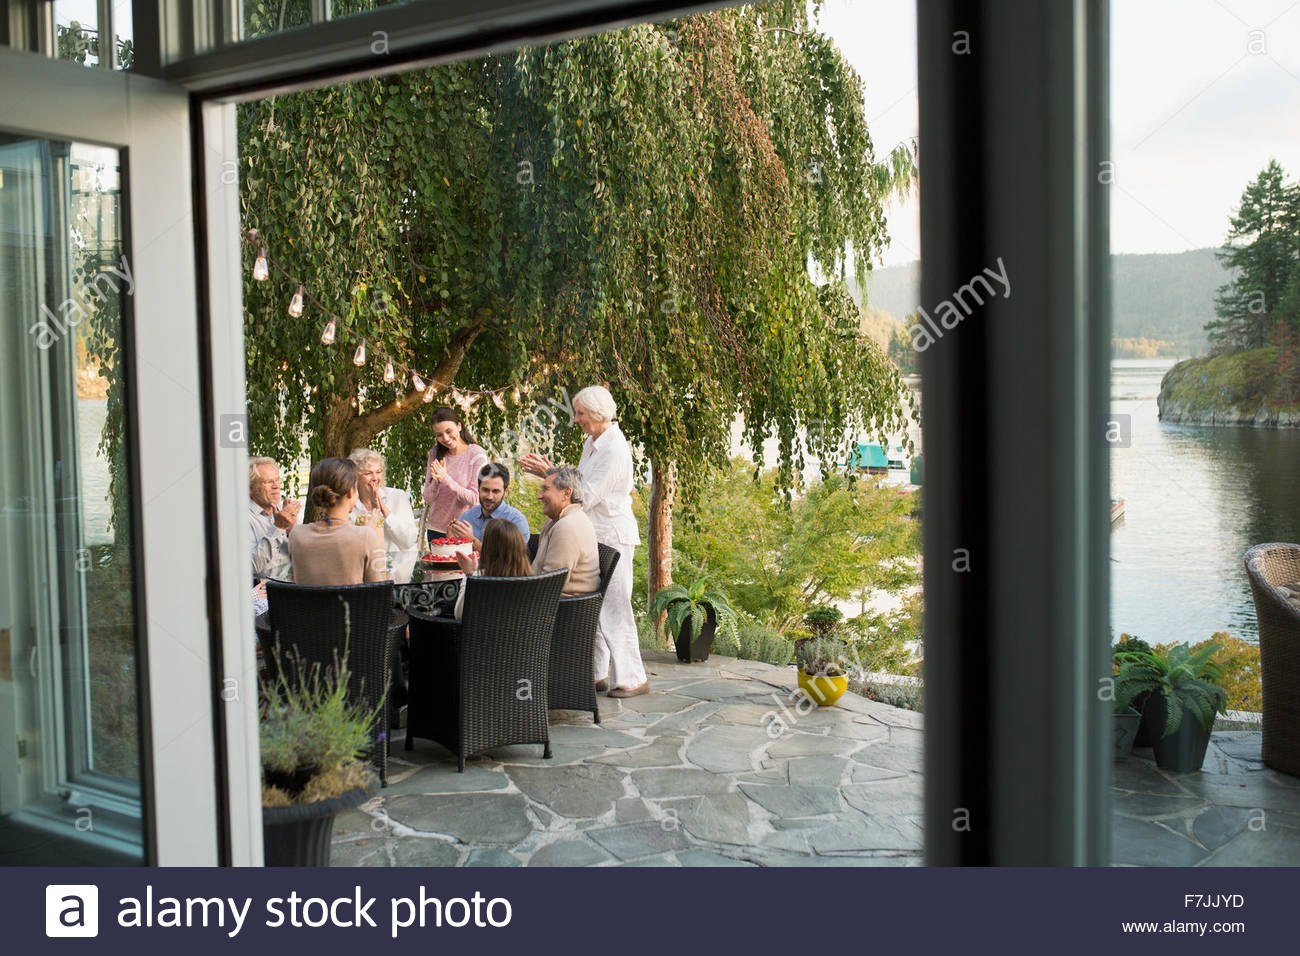 Family celebrating birthday on lakeside patio - Stock Image